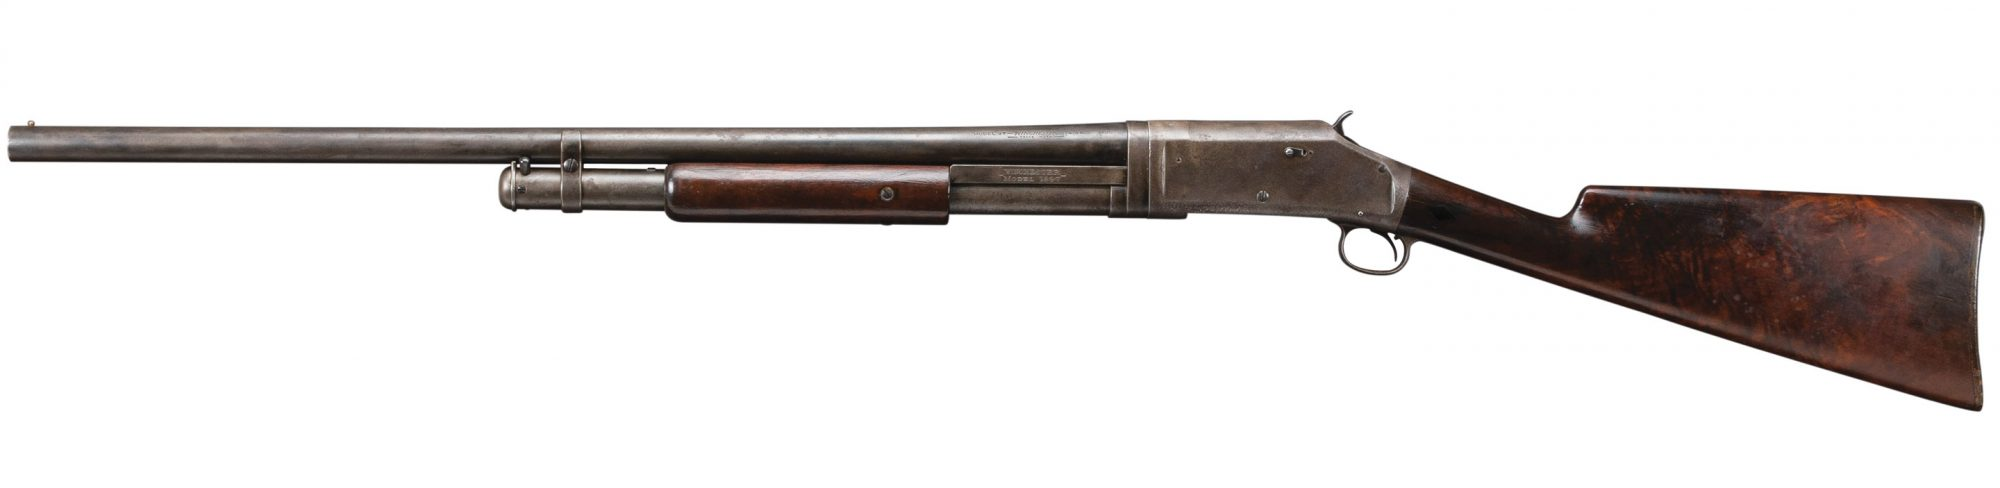 Photo of a restored Winchester Model 1897 shotgun, before restoration work by Turnbull Restoration of Bloomfield NY